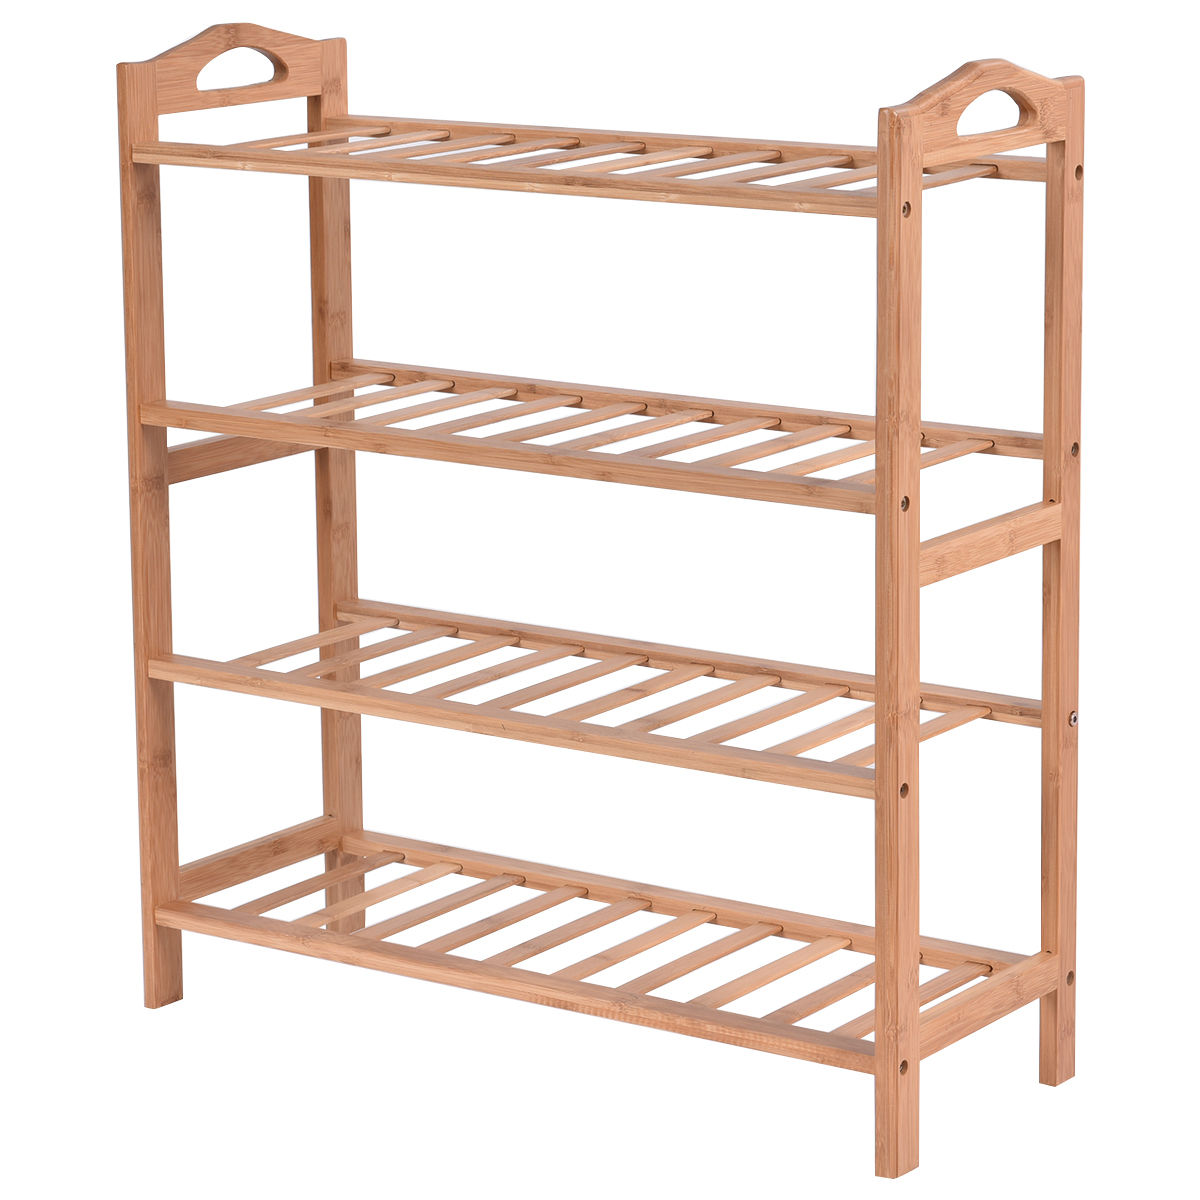 Organizer, Shoe, Storage, Modern, Shelf, Bamboo